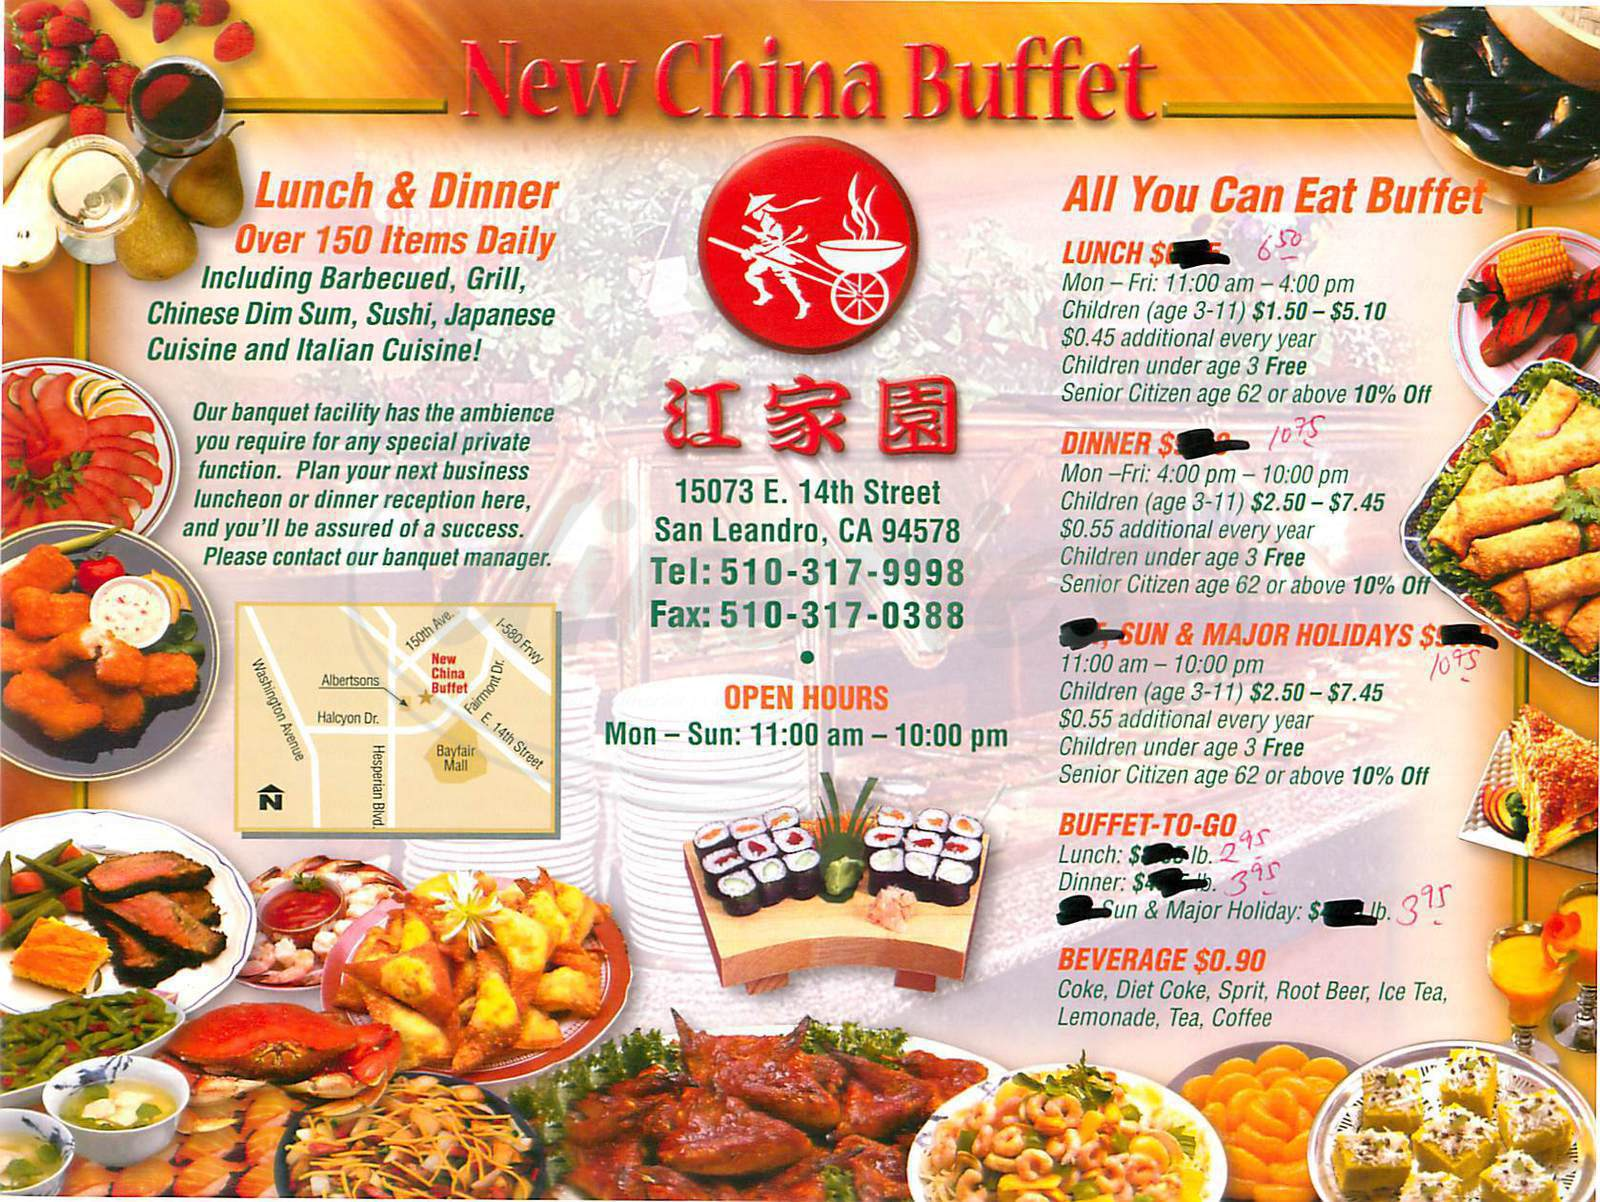 menu for New China Buffet